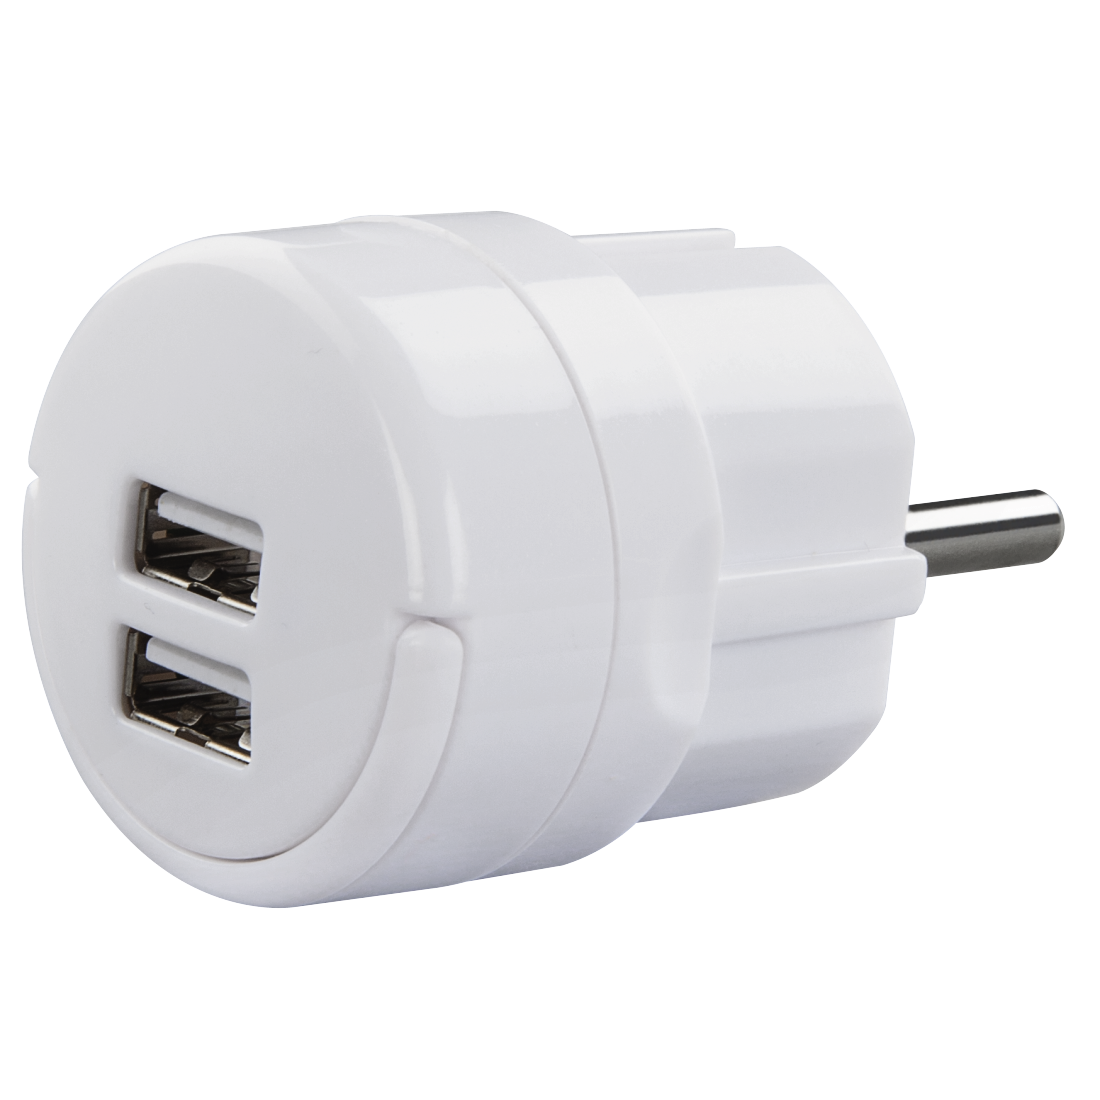 abx High-Res Image - Hama, USB-adapter, 2,1A, 2 uitgangen